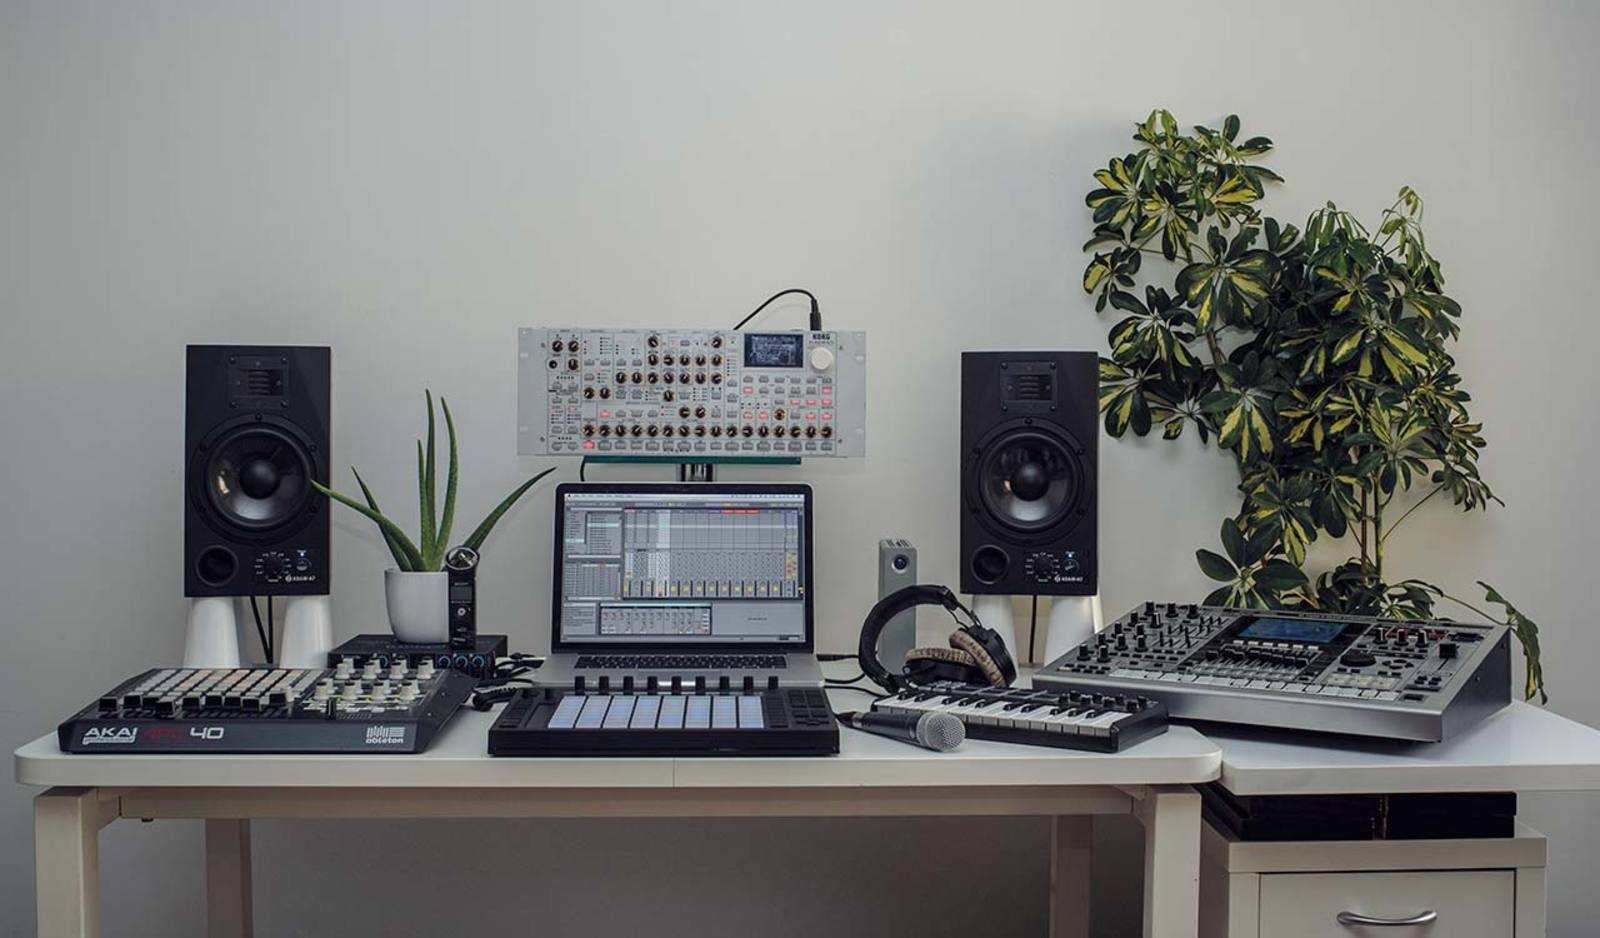 how to setup mic in ableton live 10